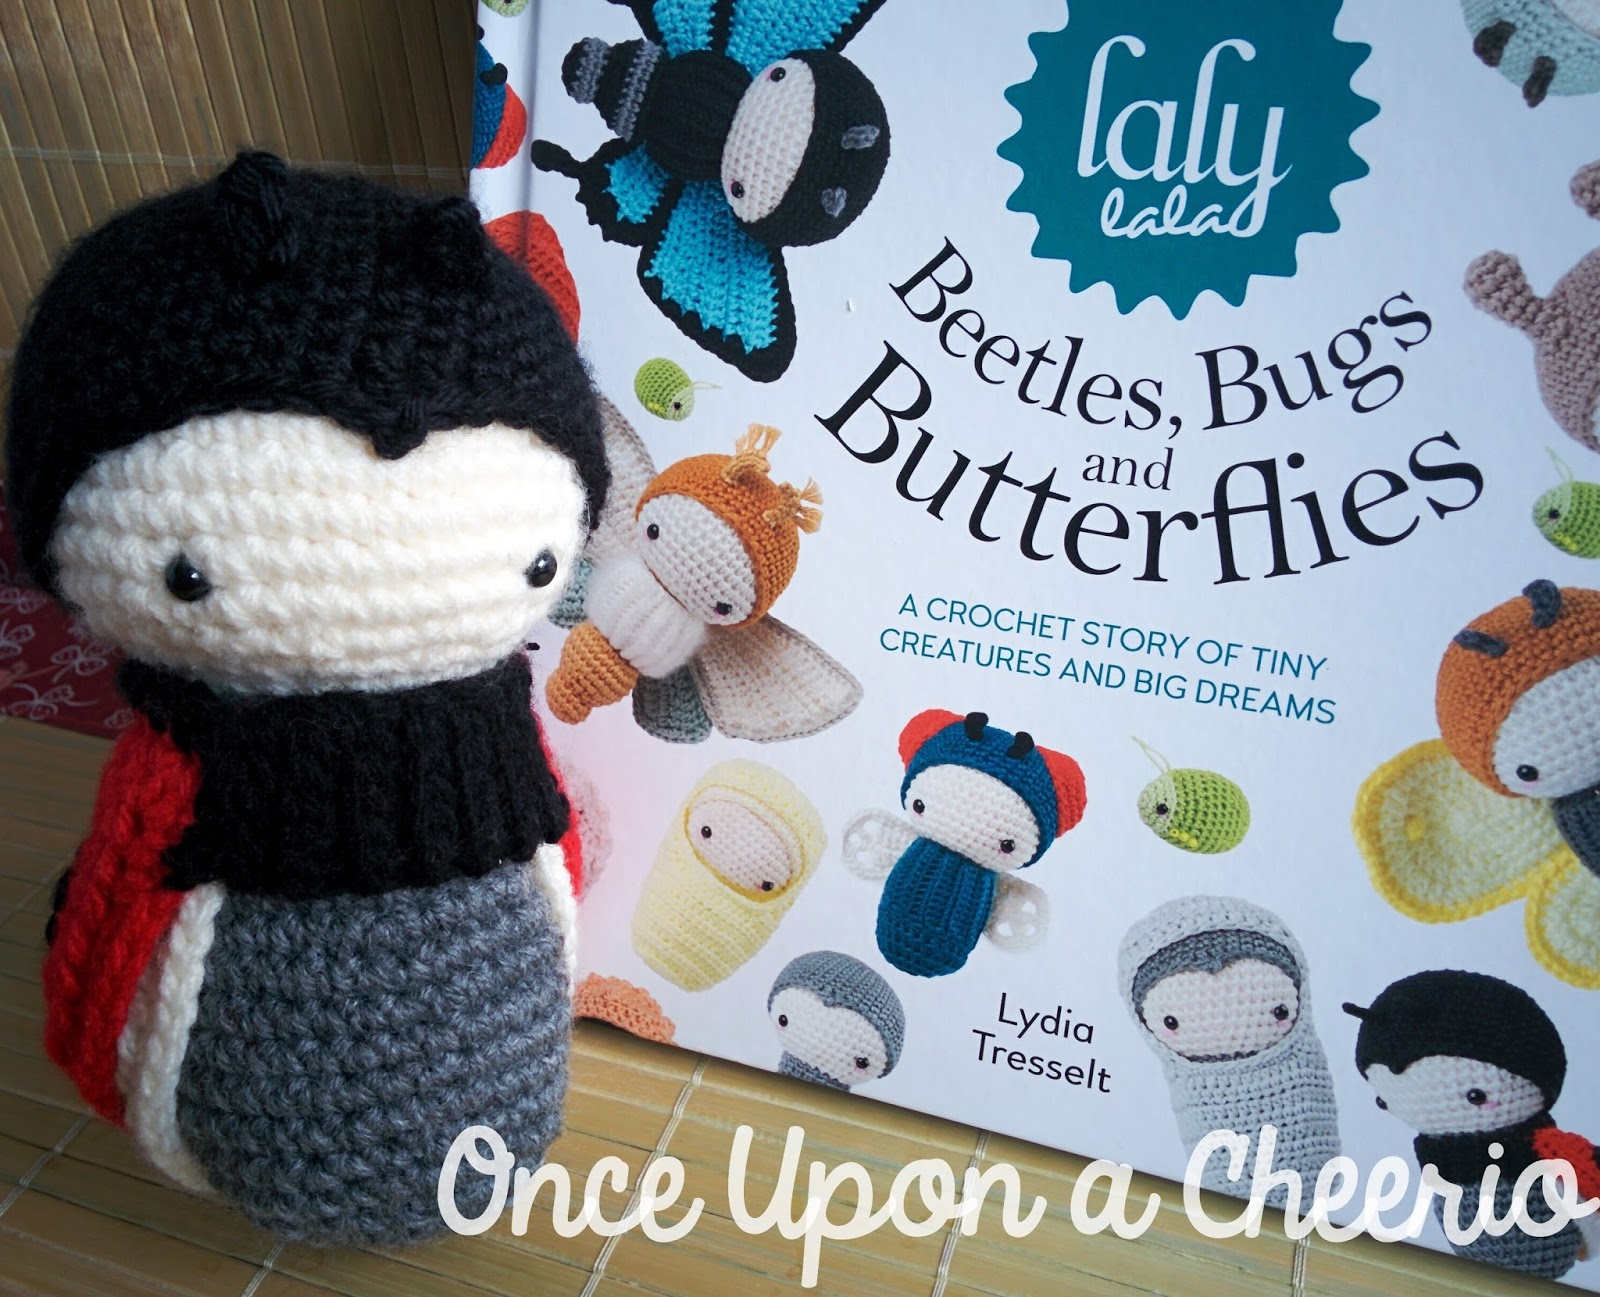 Lalylala Beetles, Bugs and Butterflies Book Review